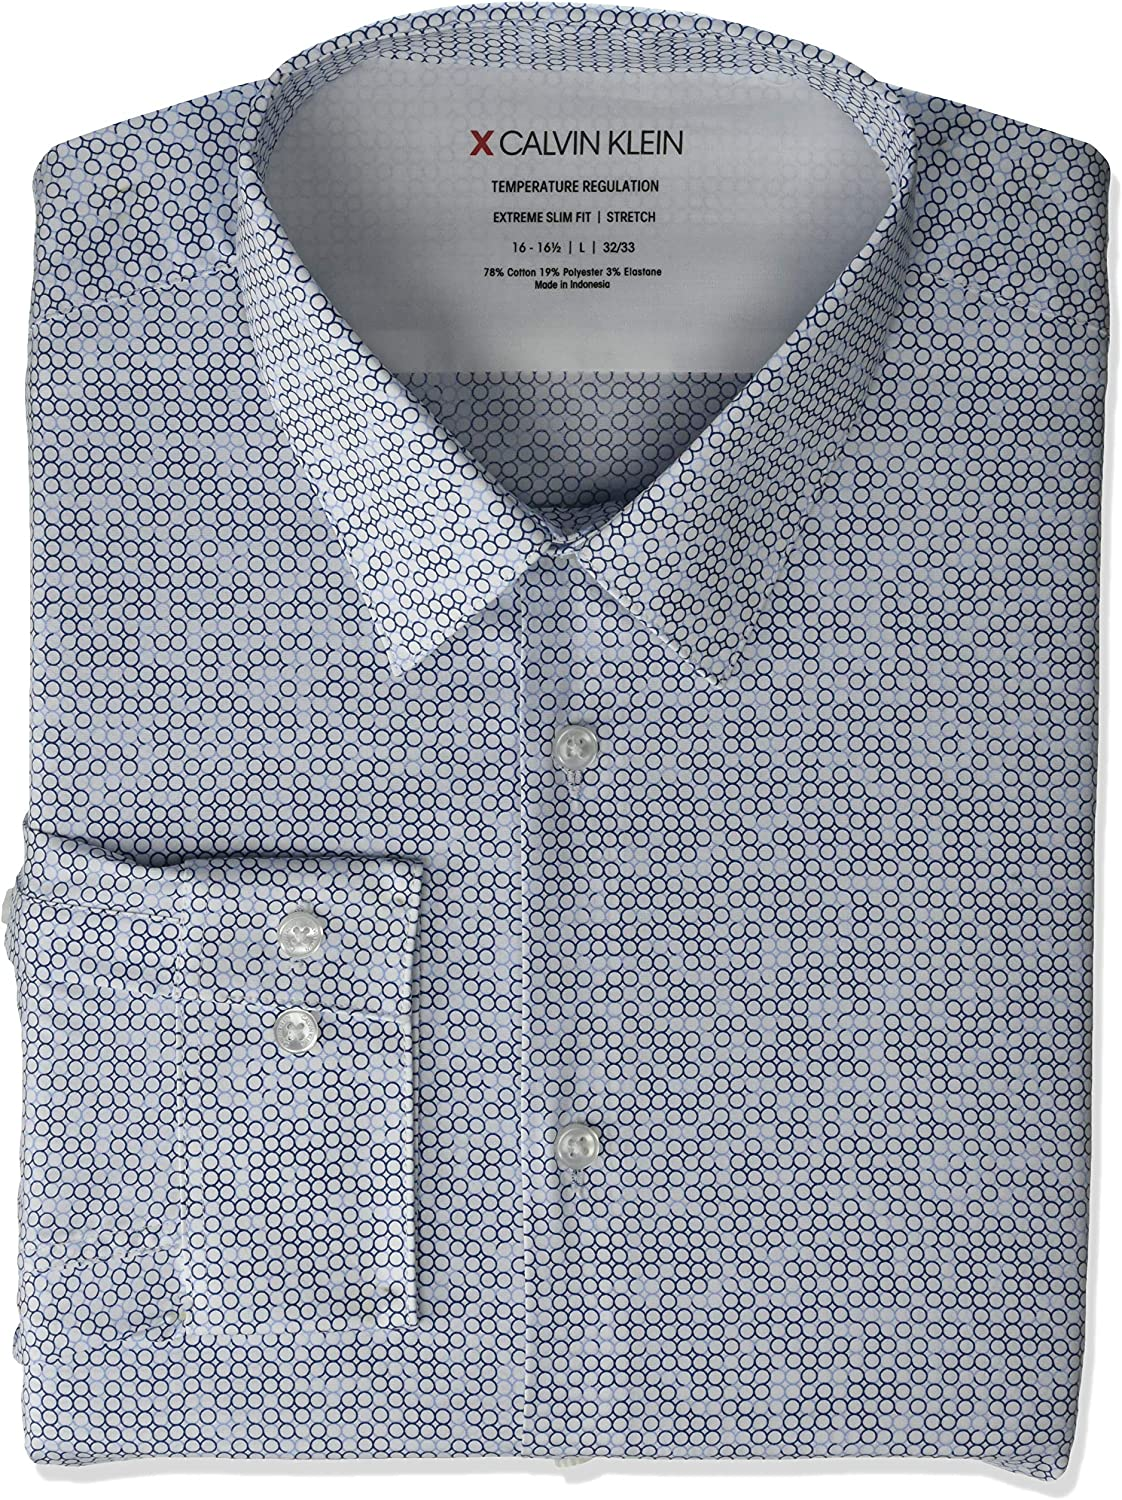 Calvin Klein Men's Thermal Stretch Xtreme Slim Fit Print Dress Shirt